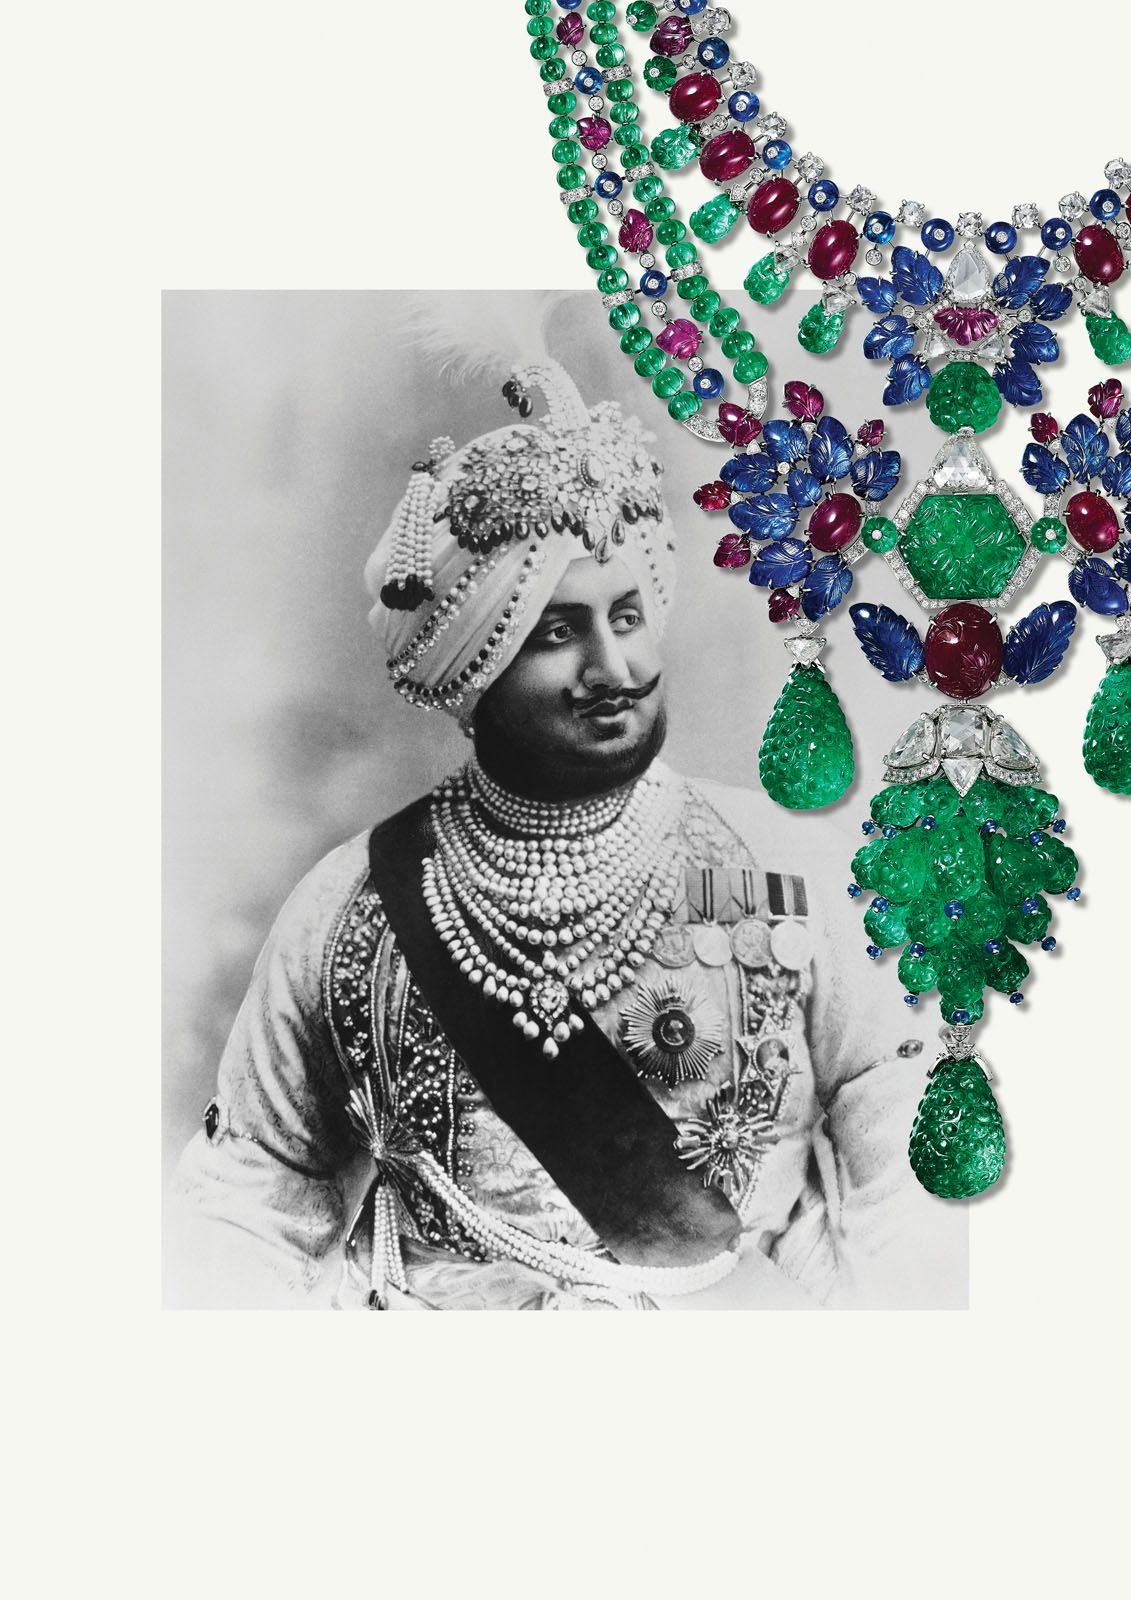 Maharajah of Patiala, Bhupinder Singh, photographed in 1911 wearing the jewels that were later remounted by Cartier in the 1920s; the Maharajah necklace fuses both Indian design influences and Cartier's aesthetic sensibilities